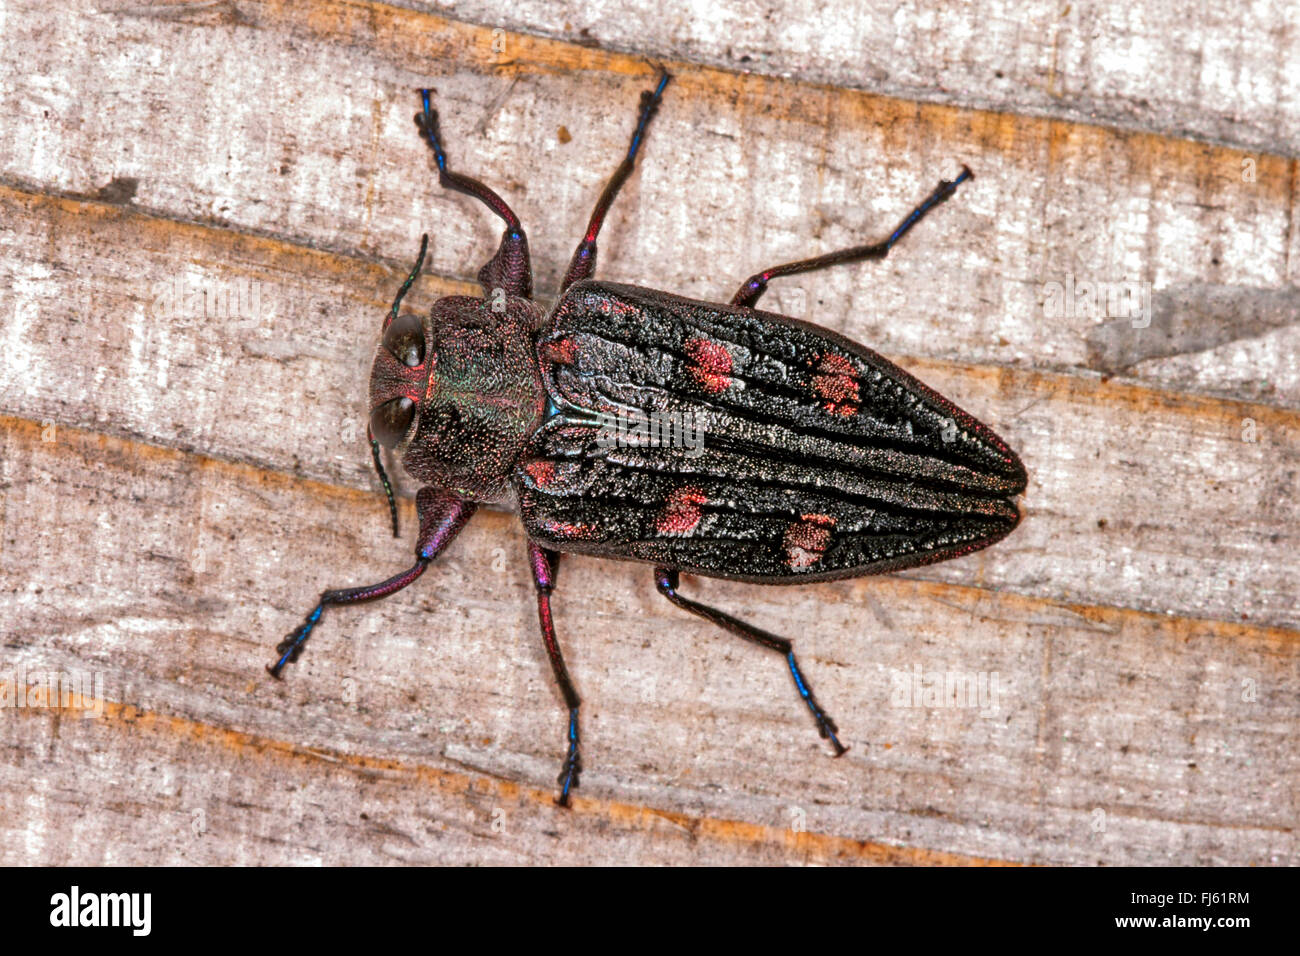 Flatheaded borer (Chrysobothris chrysostigma), on wood, Germany - Stock Image